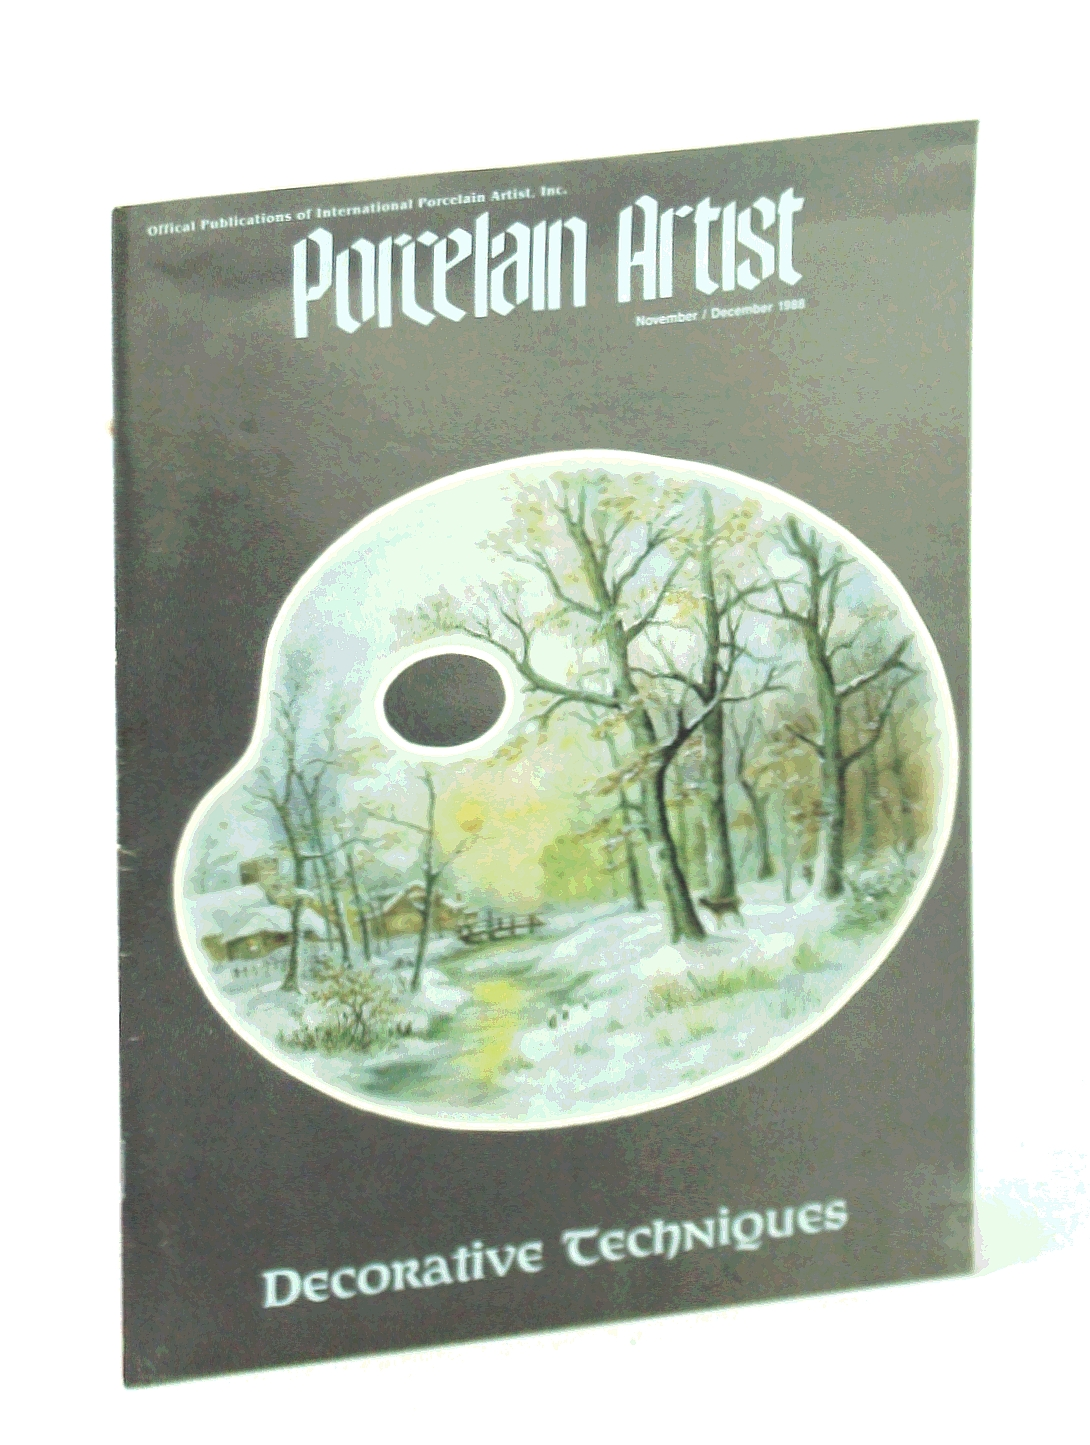 Image for Porcelain Artist [Magazine] November / December [Nov./ Dec.] 1988: Decorative Techniques